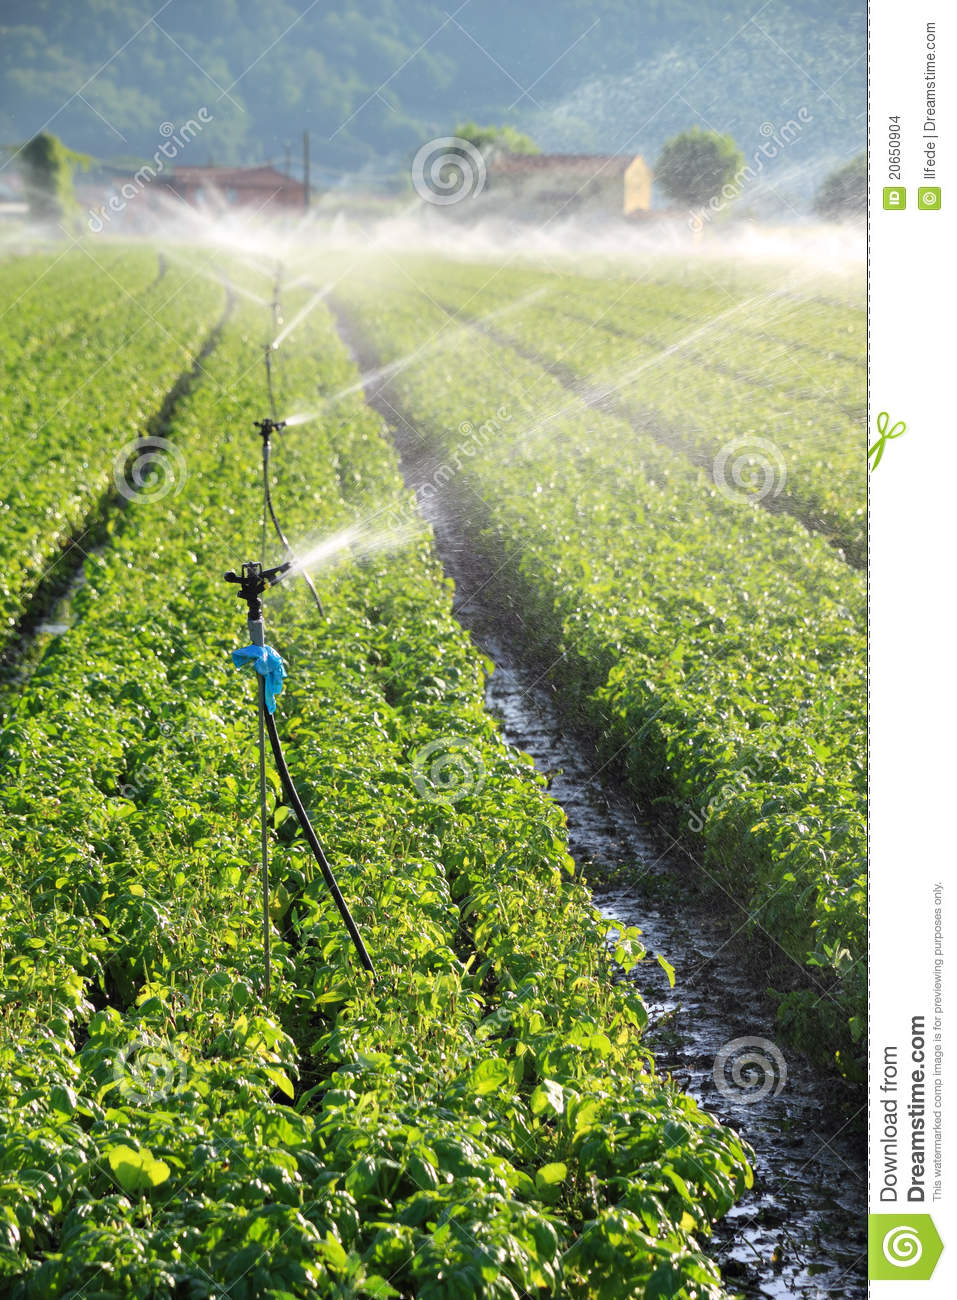 Irrigation On Farm Field Stock Photo Image Of Irrigating